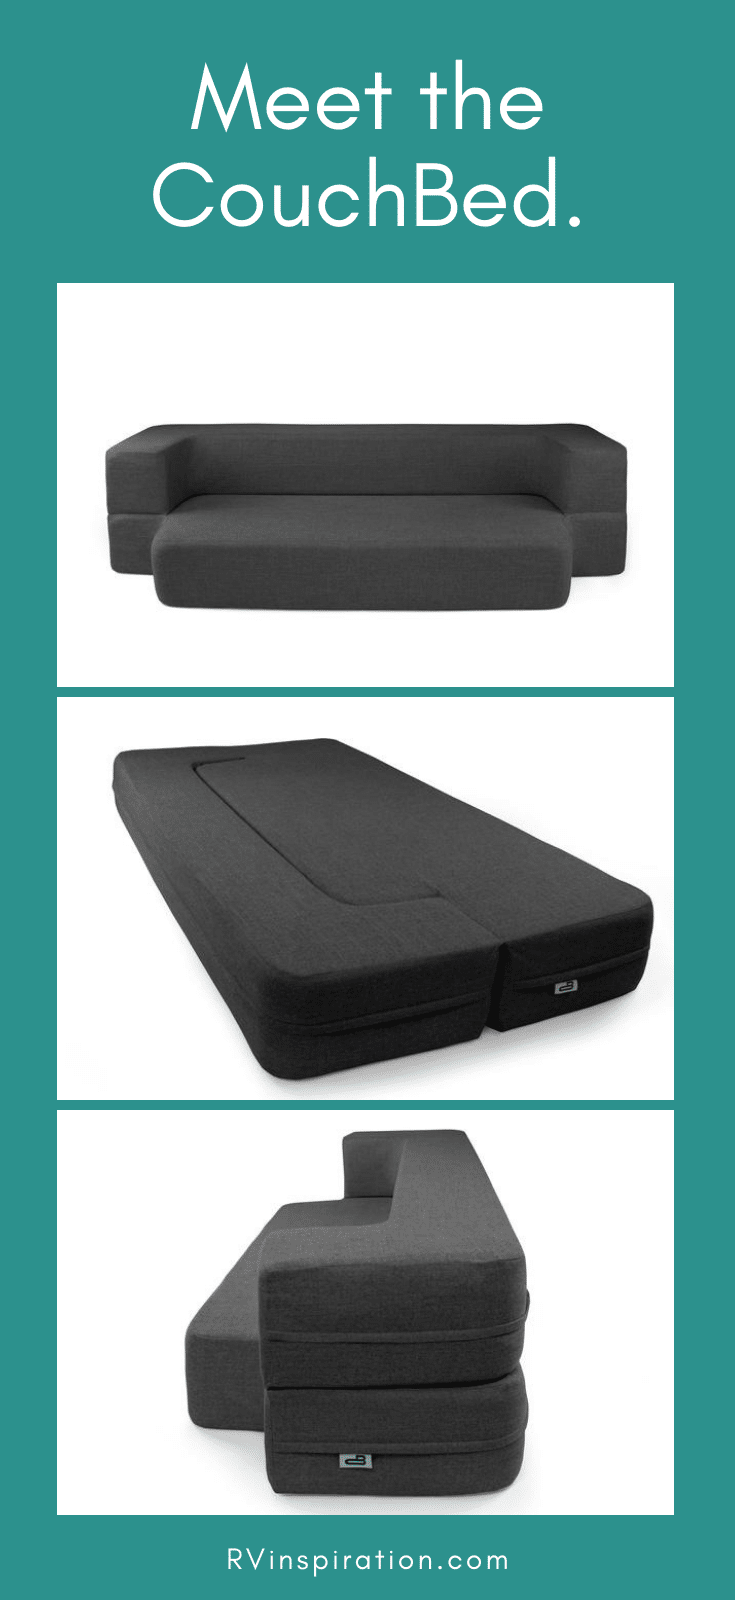 CouchBed is a folding memory foam mattress perfect for your DIY RV sofa bed. | Couchbed.com